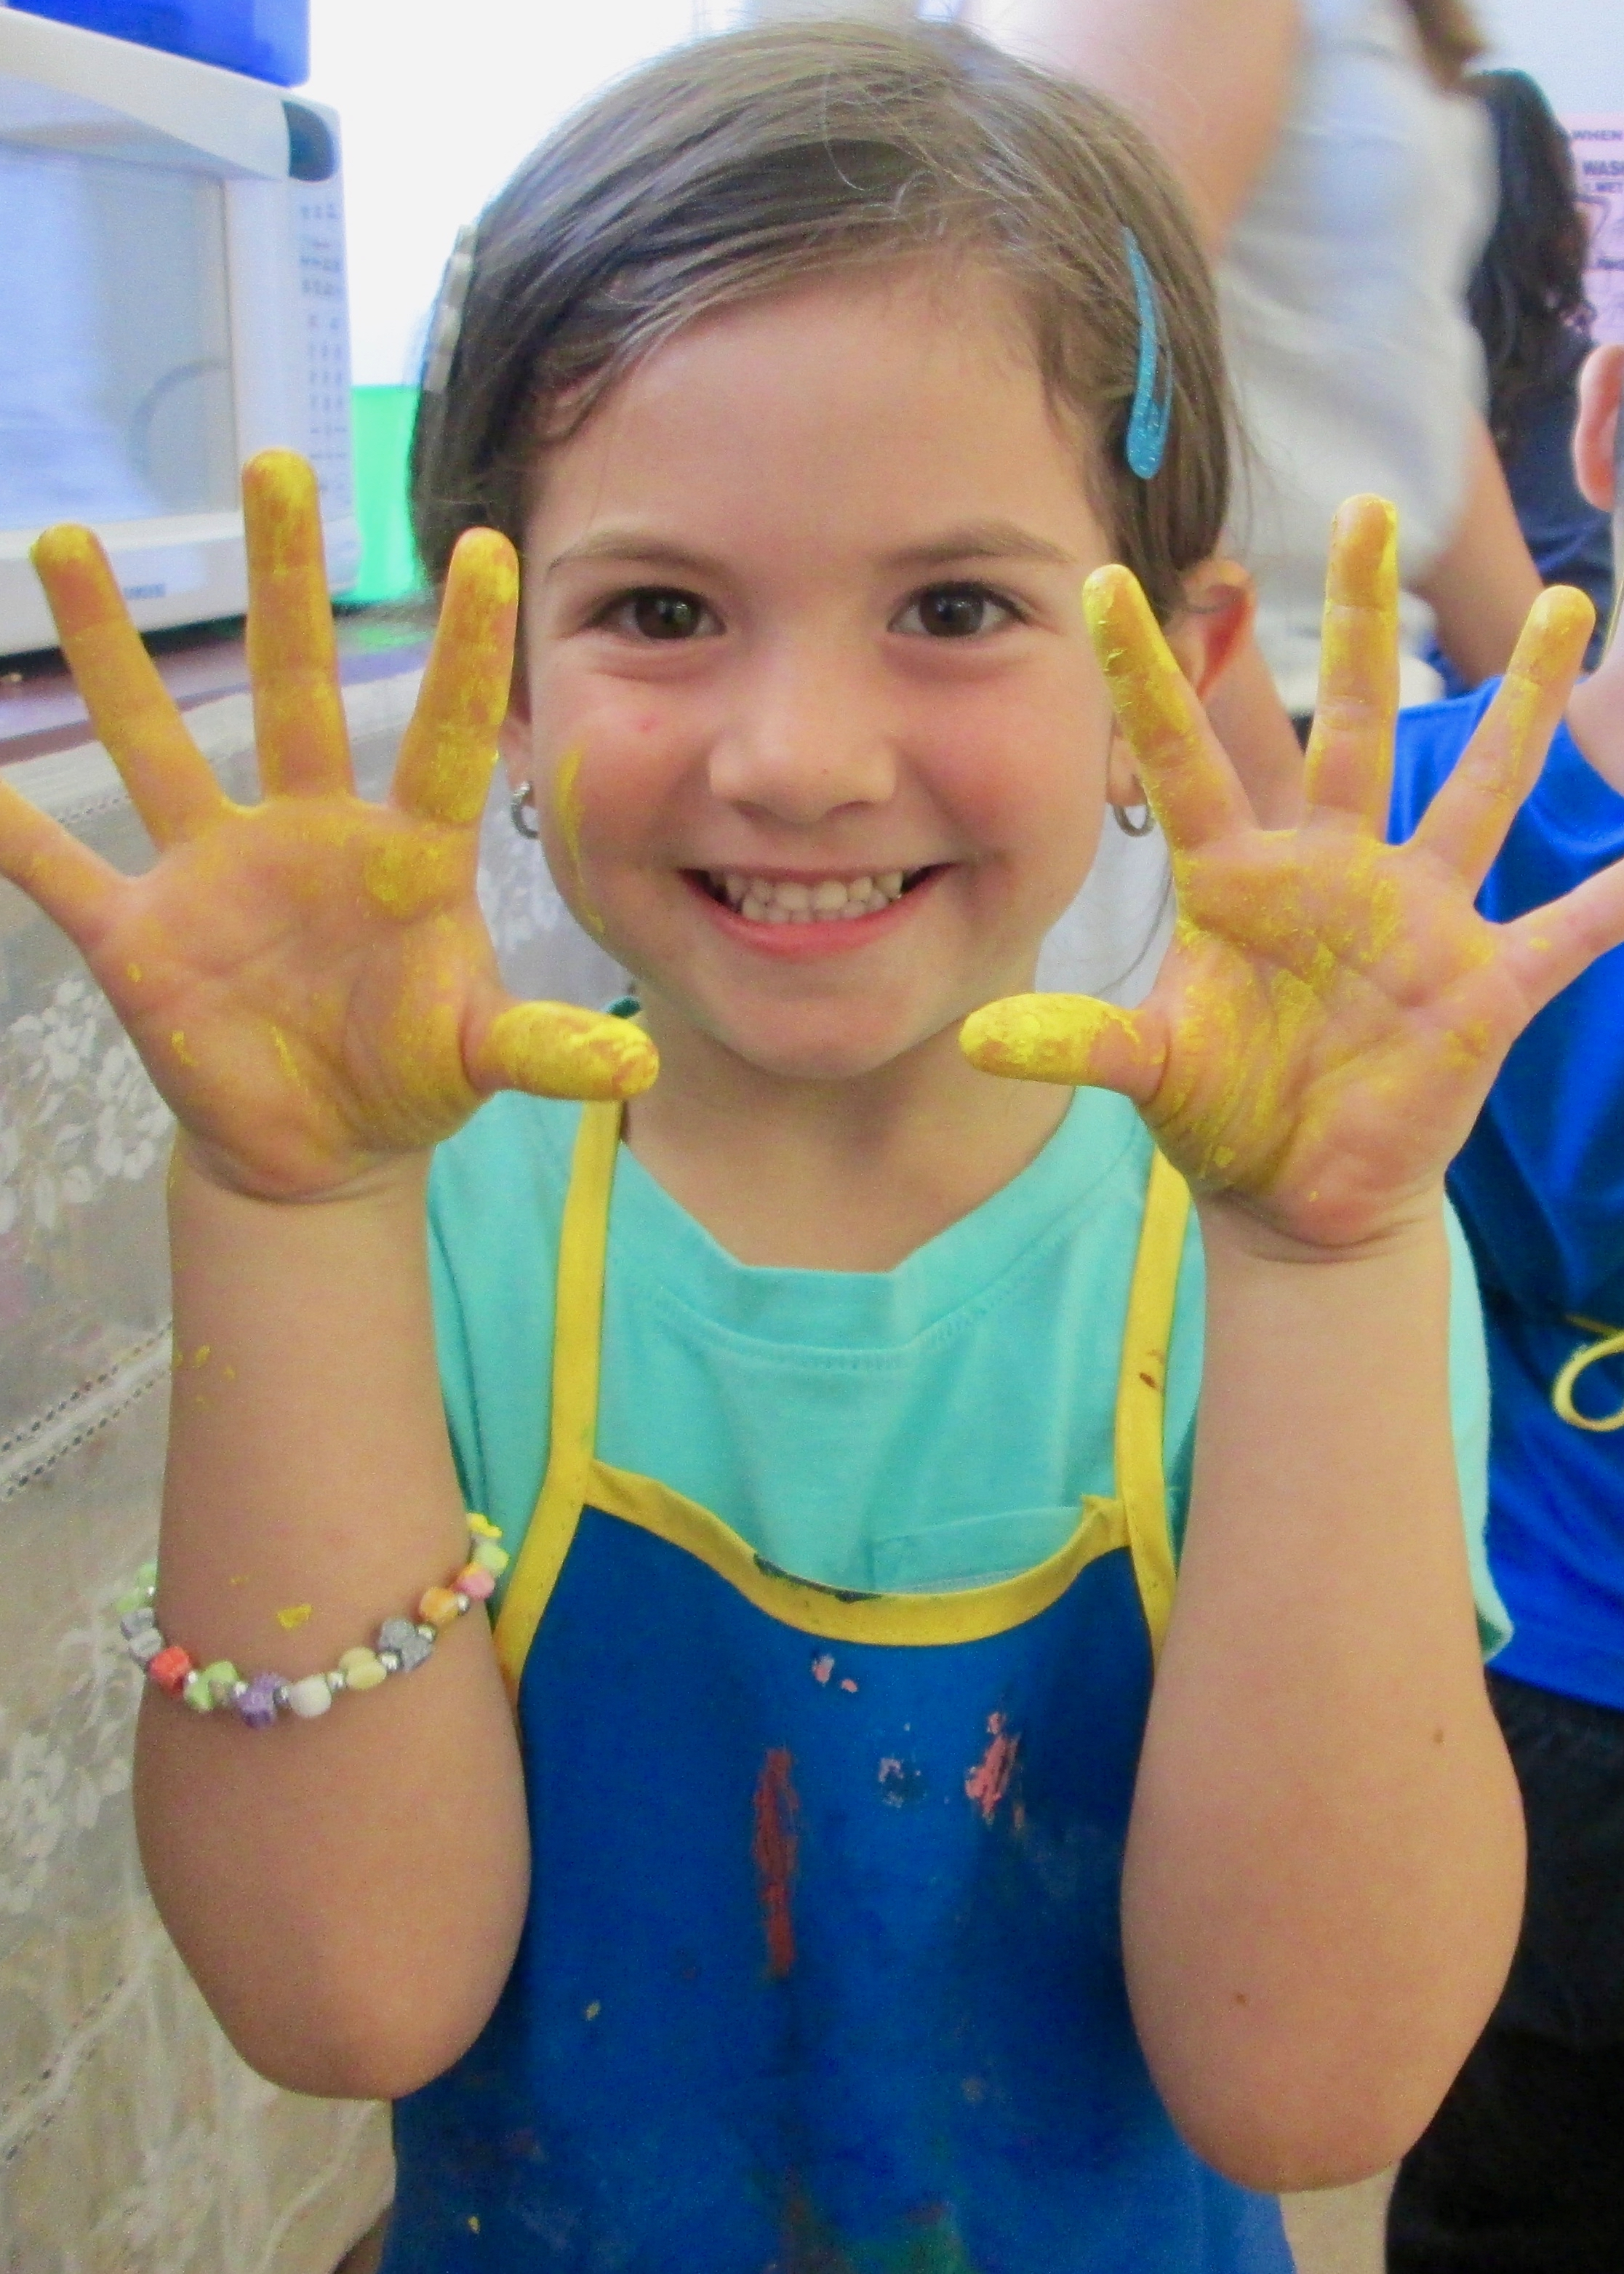 Girl with yellow painted hands.